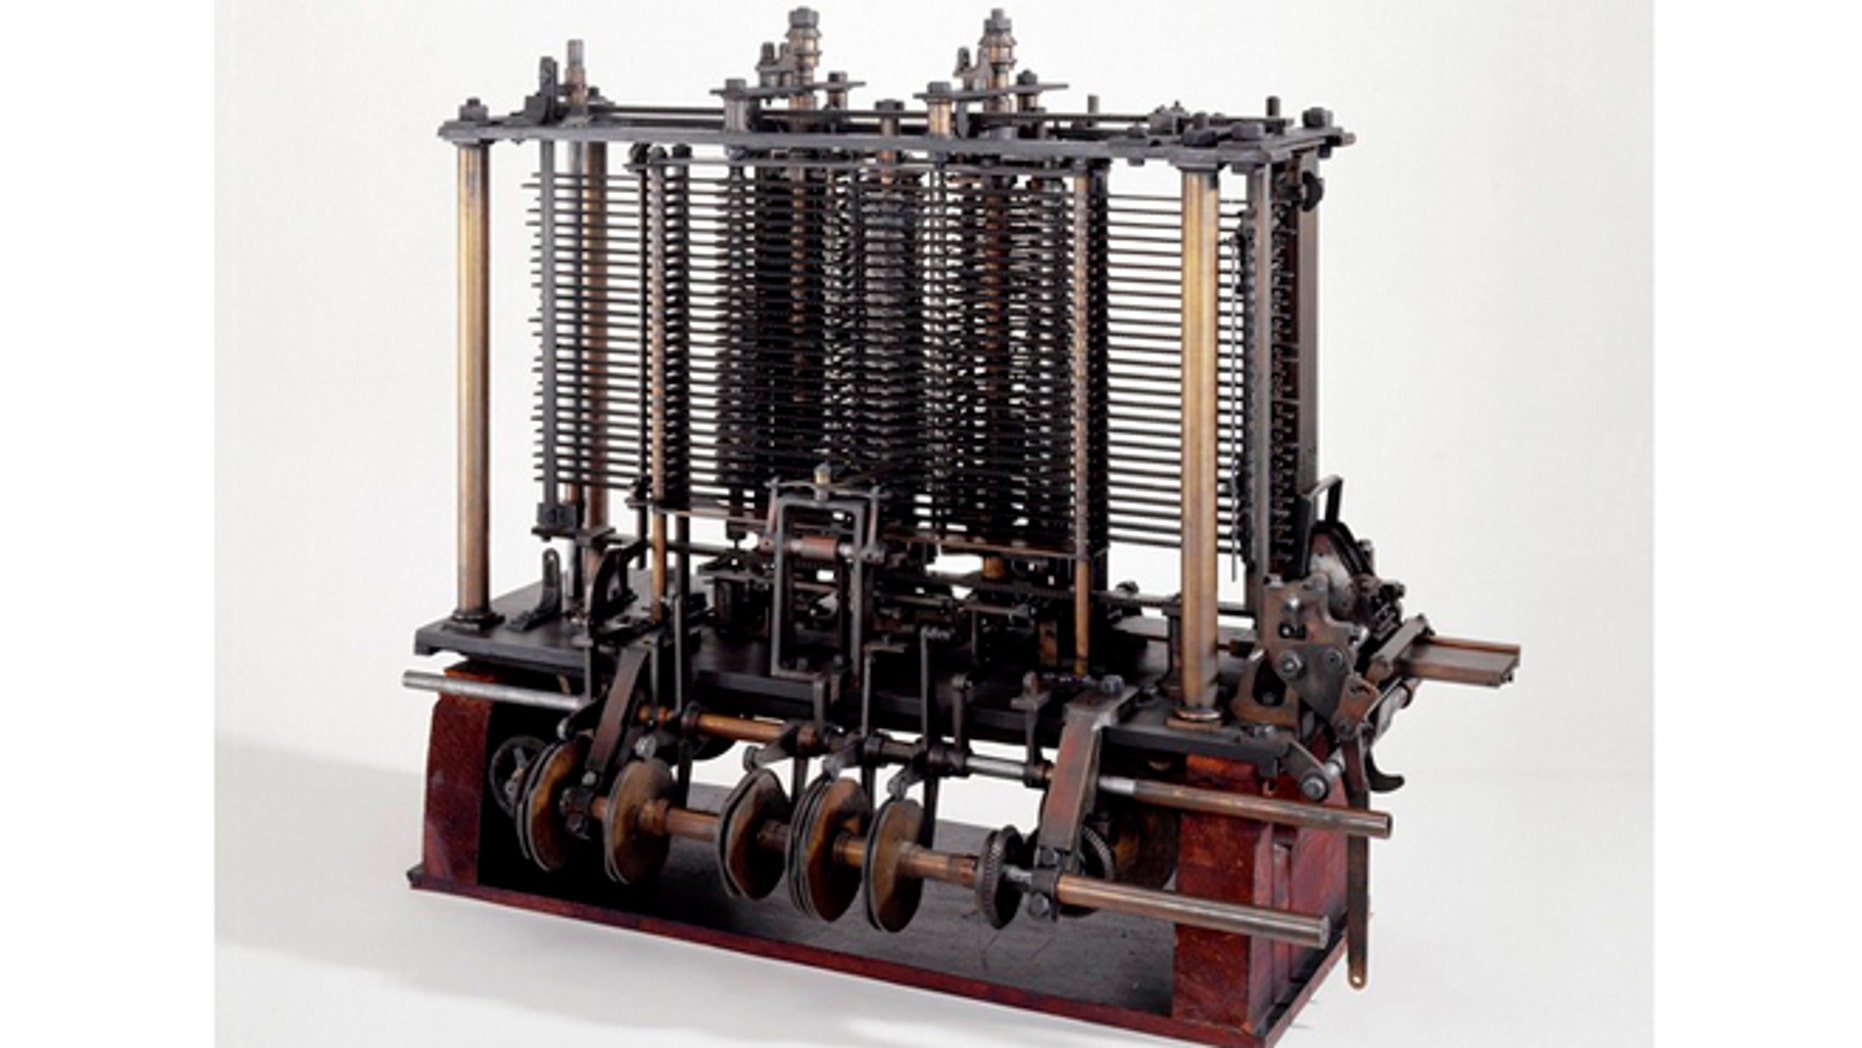 Famed mathematician Charles Babbage designed a Victorian-era computer called the Analytical Engine. This is a portion of the mill with a printing mechanism.